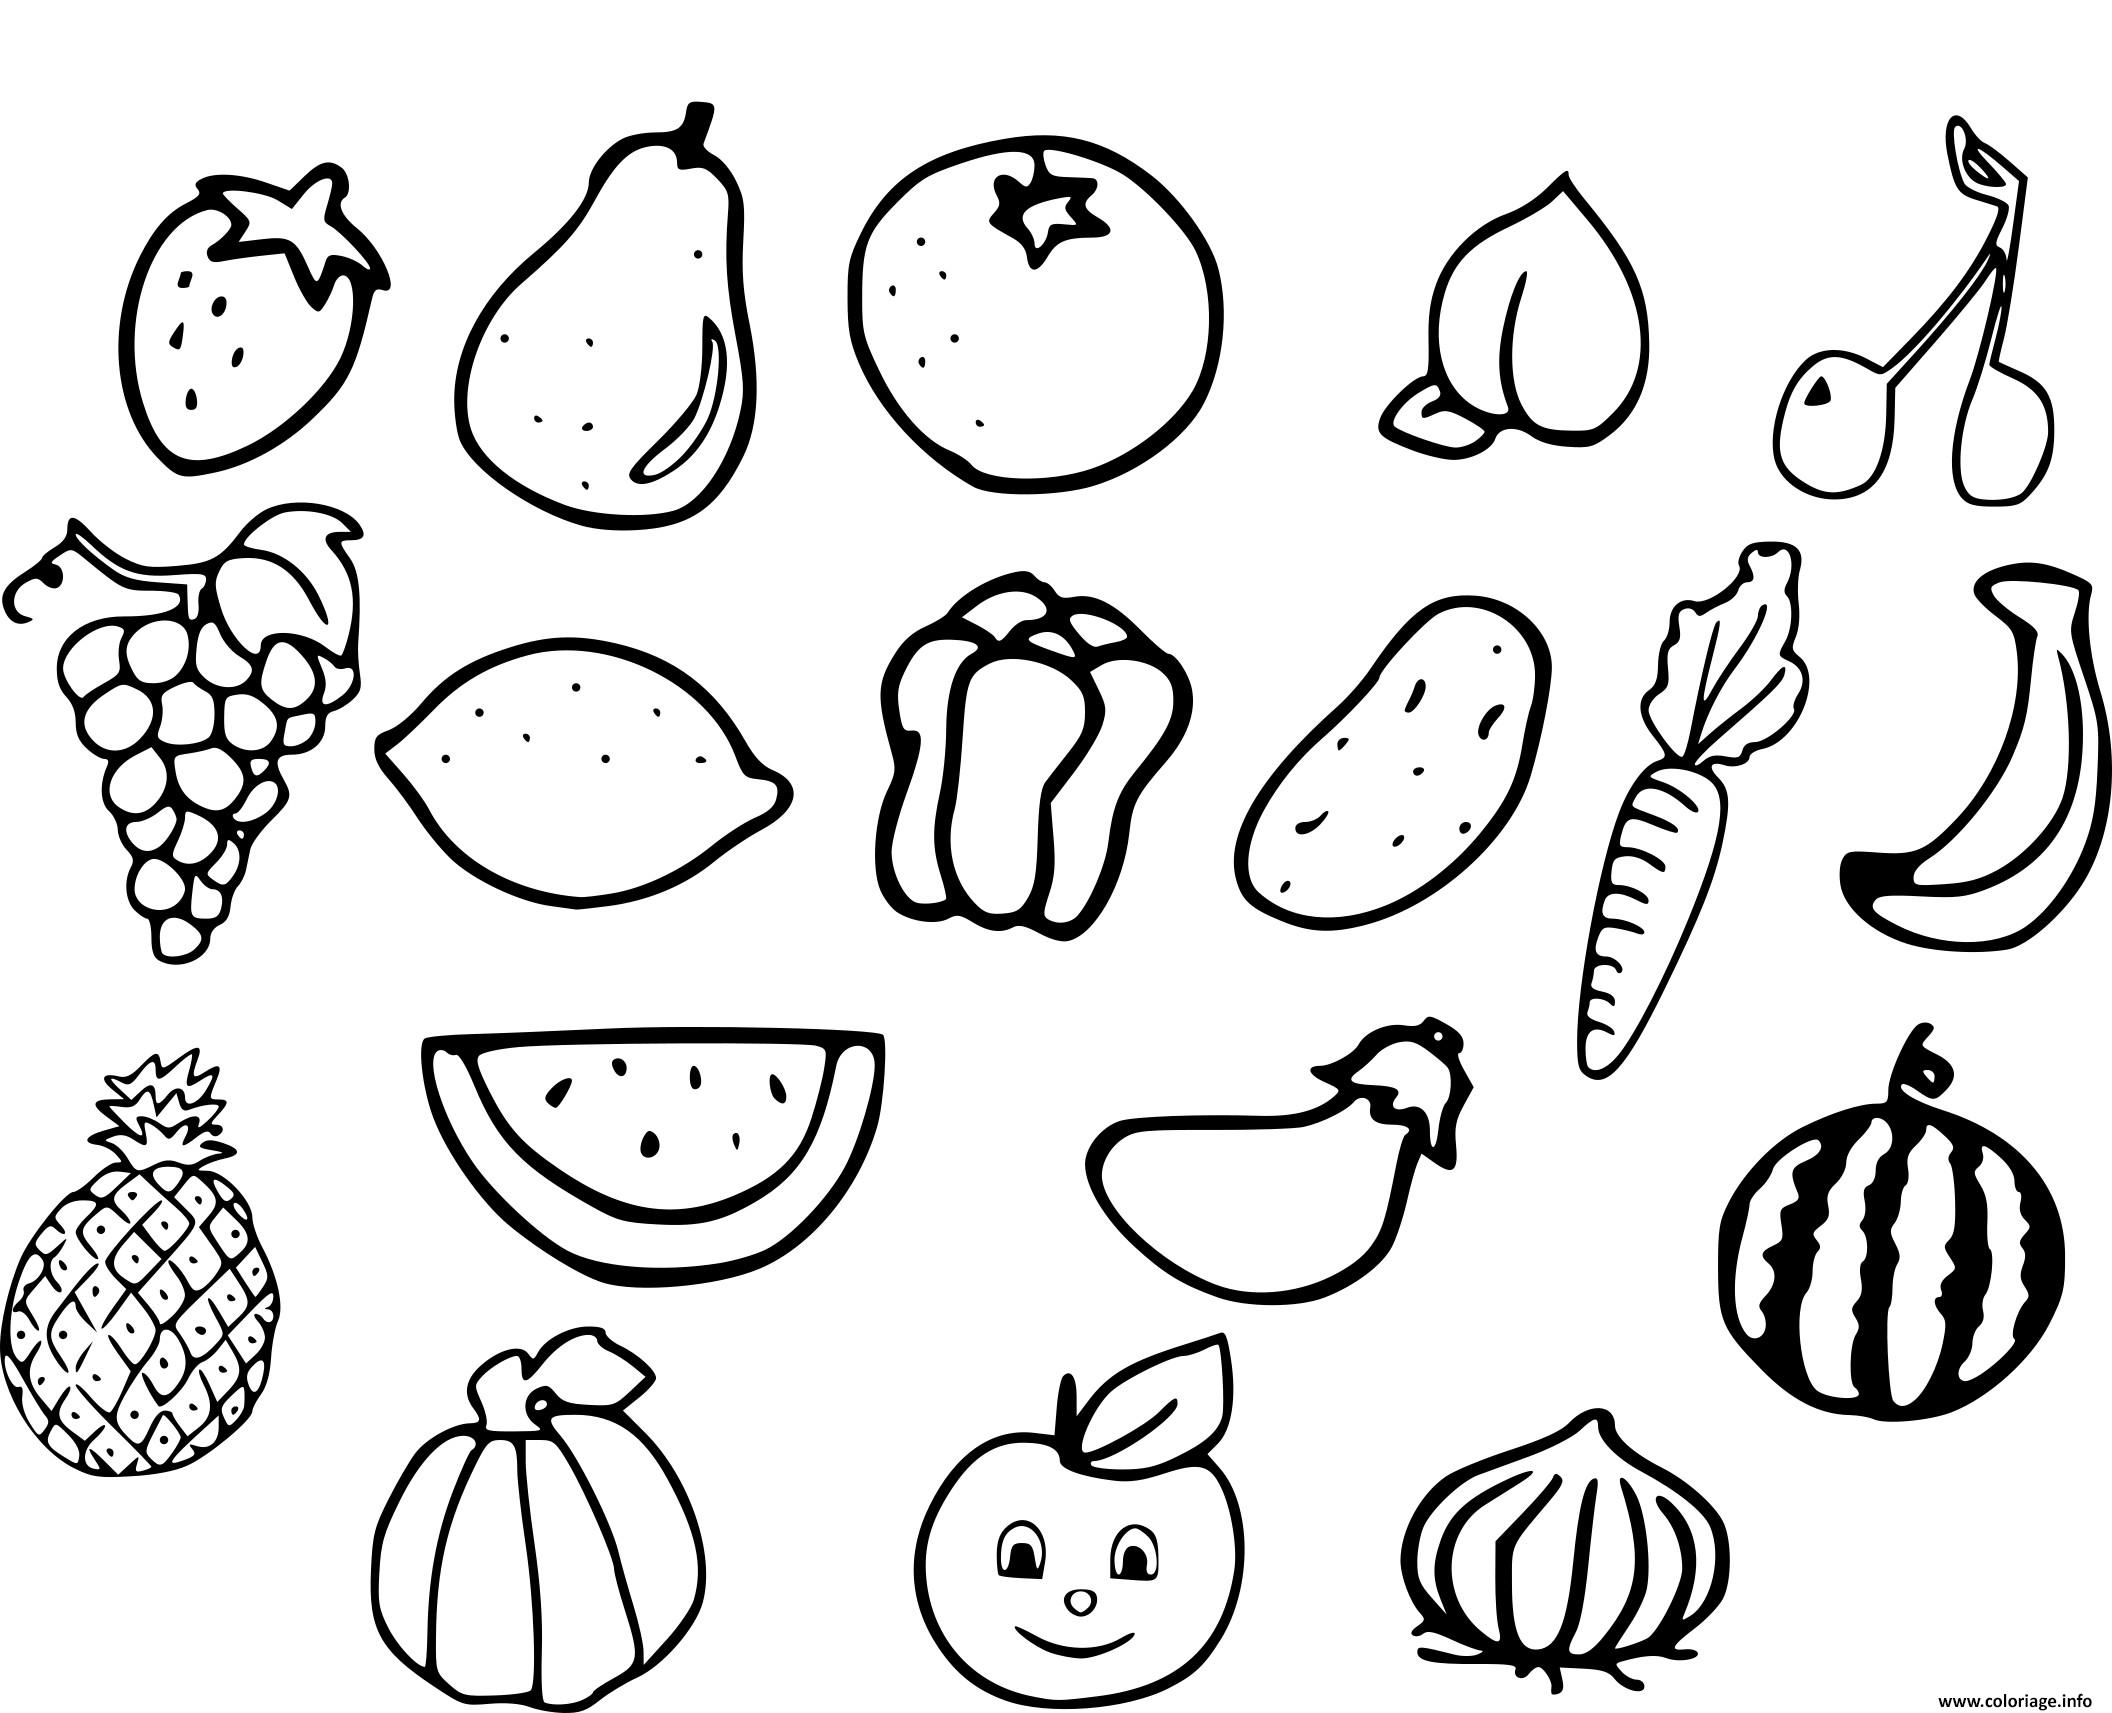 Coloriage fruits et legumes dessin - Fruits a colorier et a imprimer ...